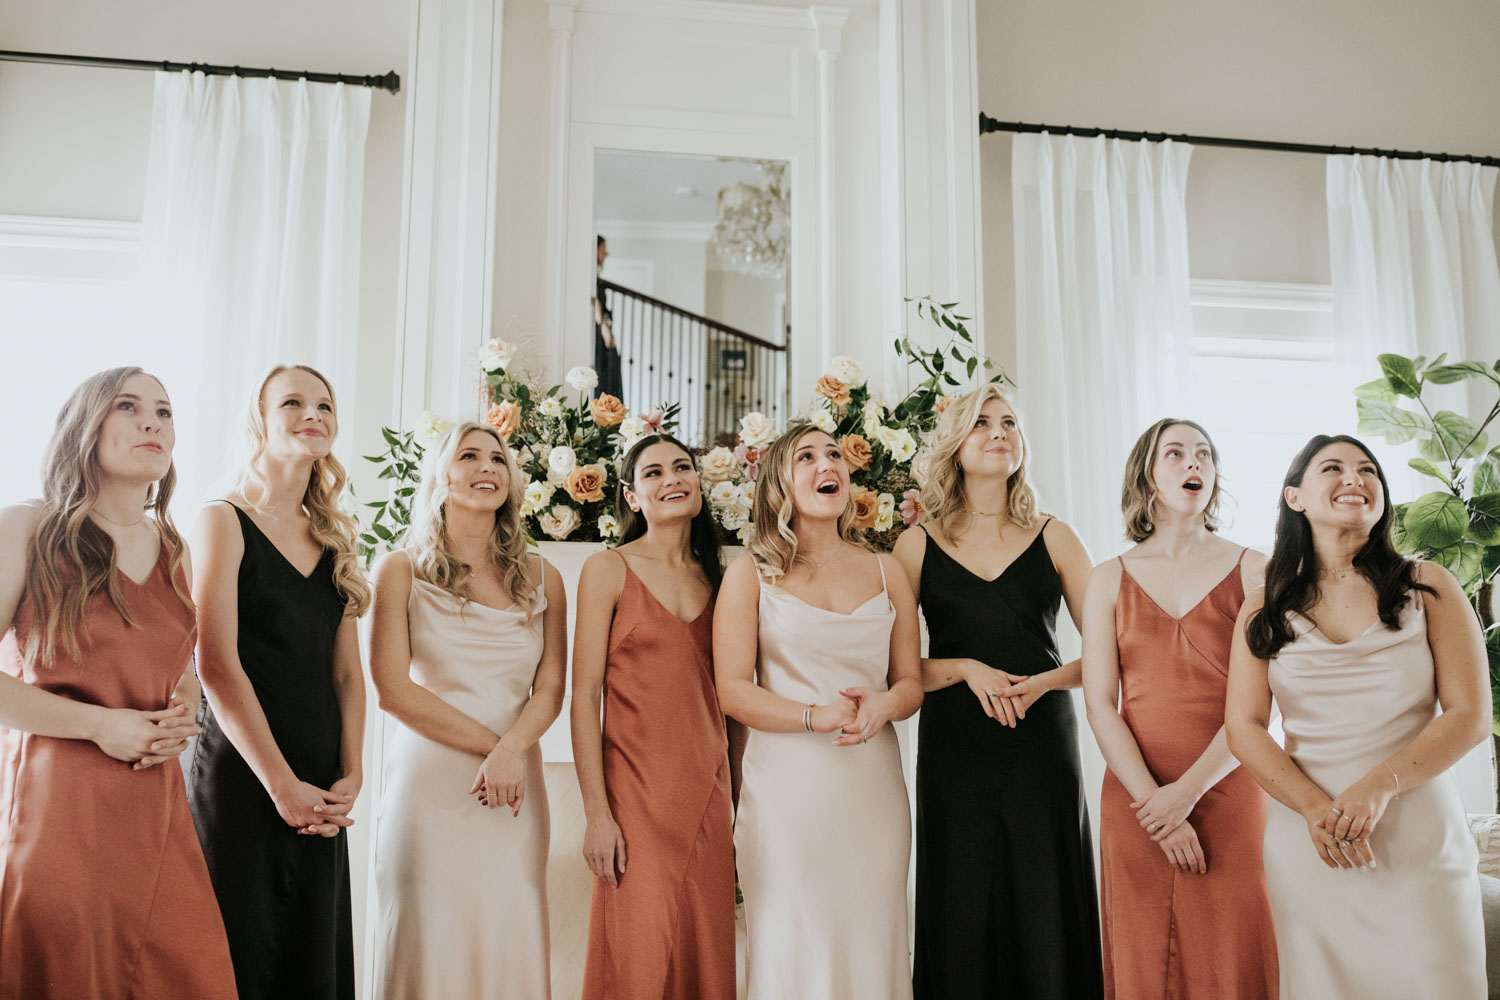 Emotional First Look with Bridesmaids and Bride